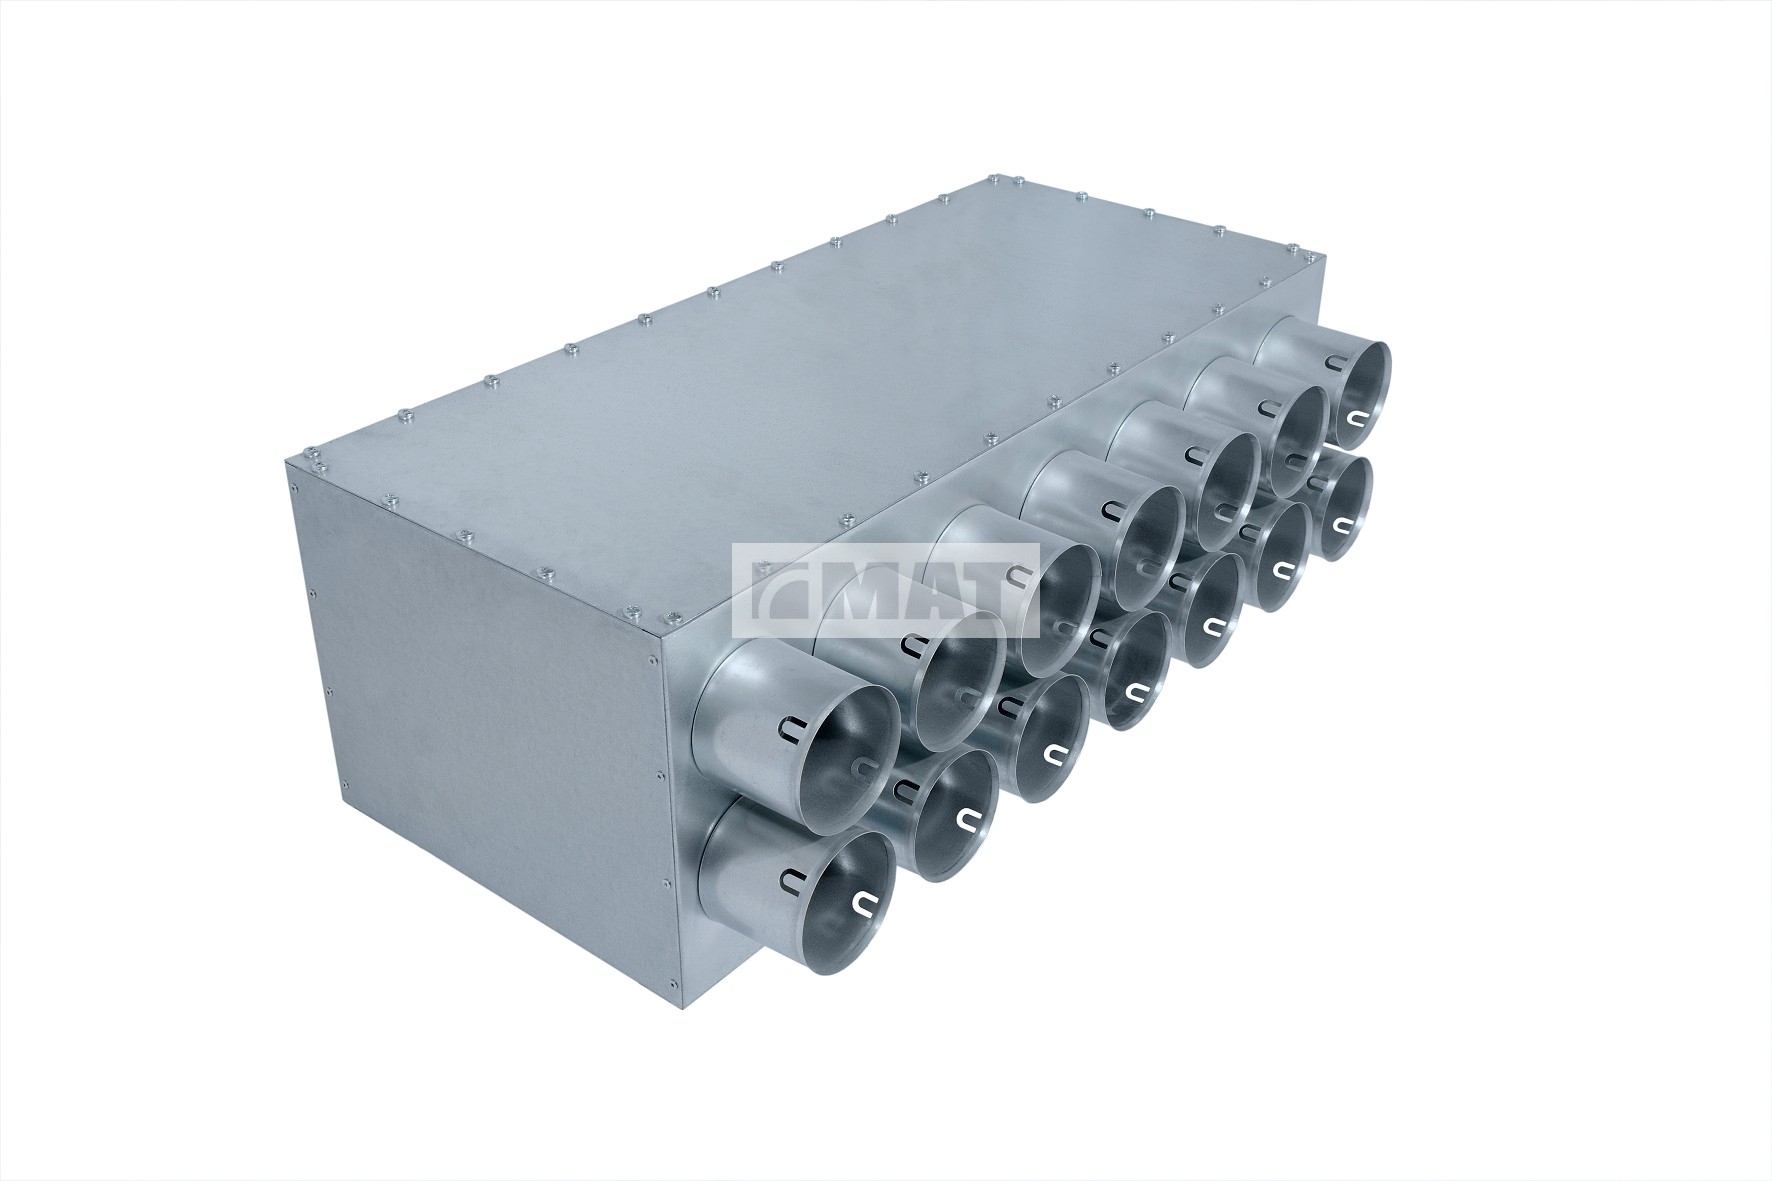 Direct distribution box, 14 outlets / inlets